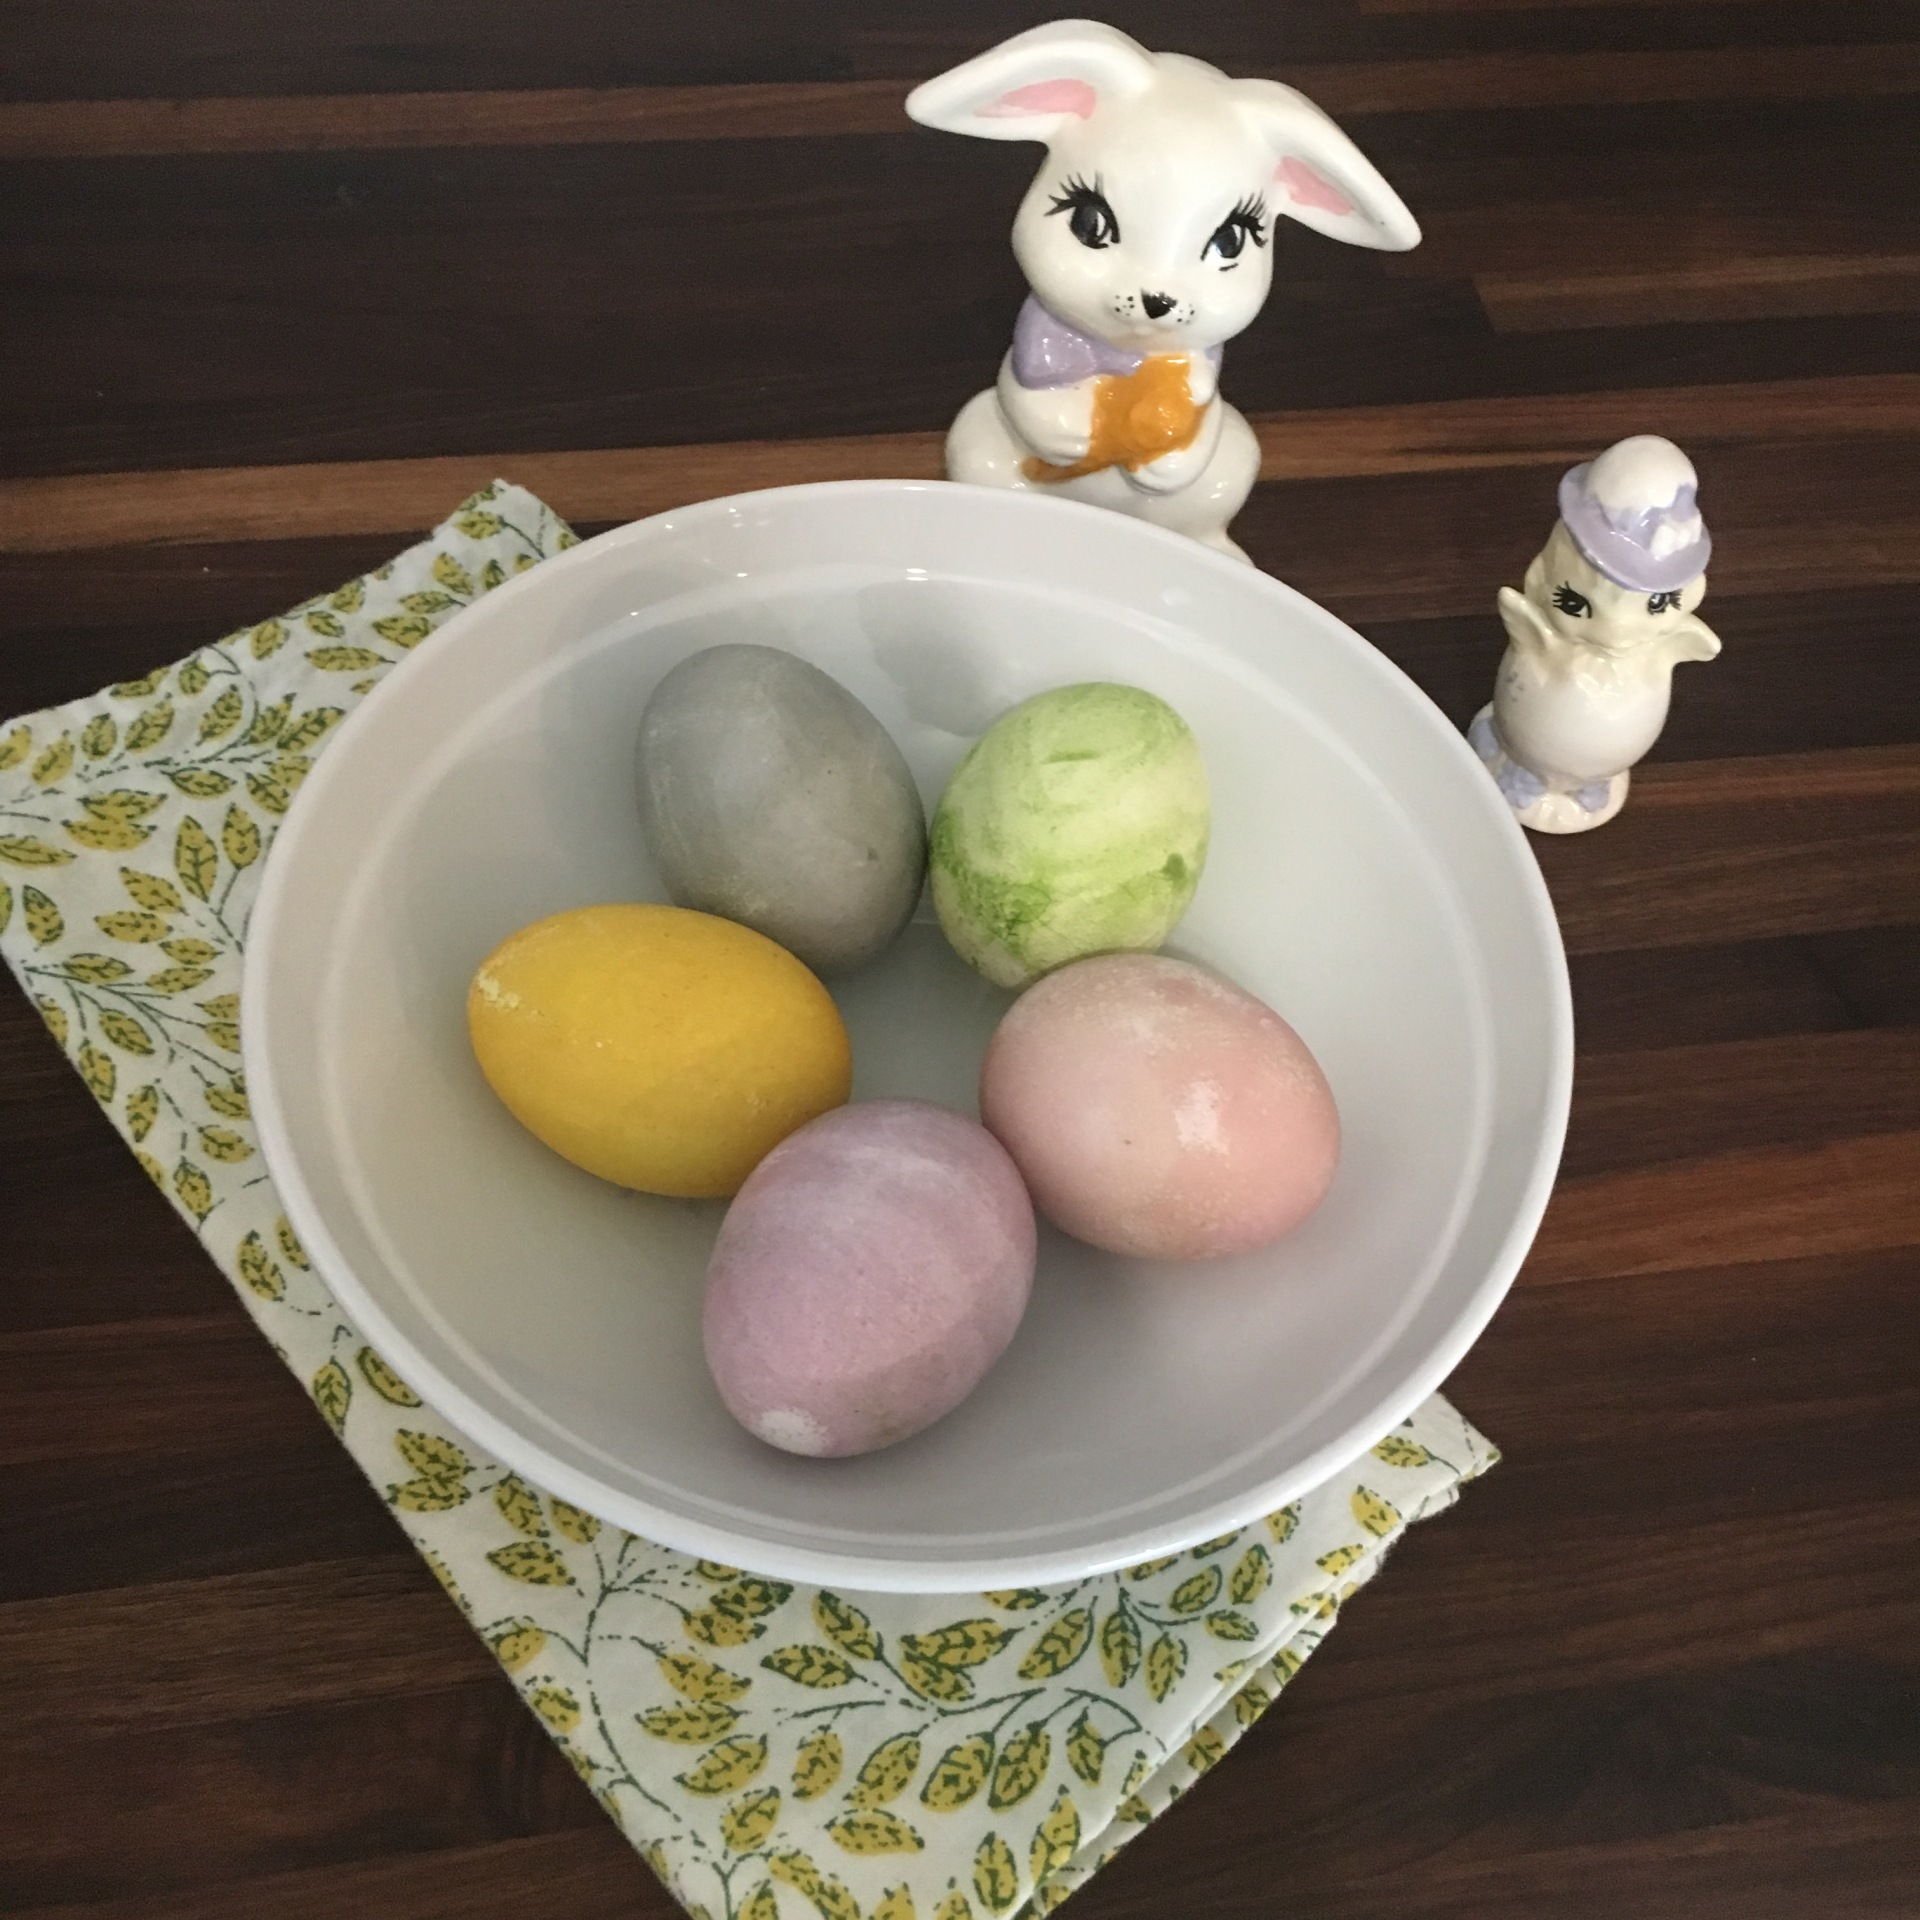 Safe and Fun Way to Dye Easter Eggs